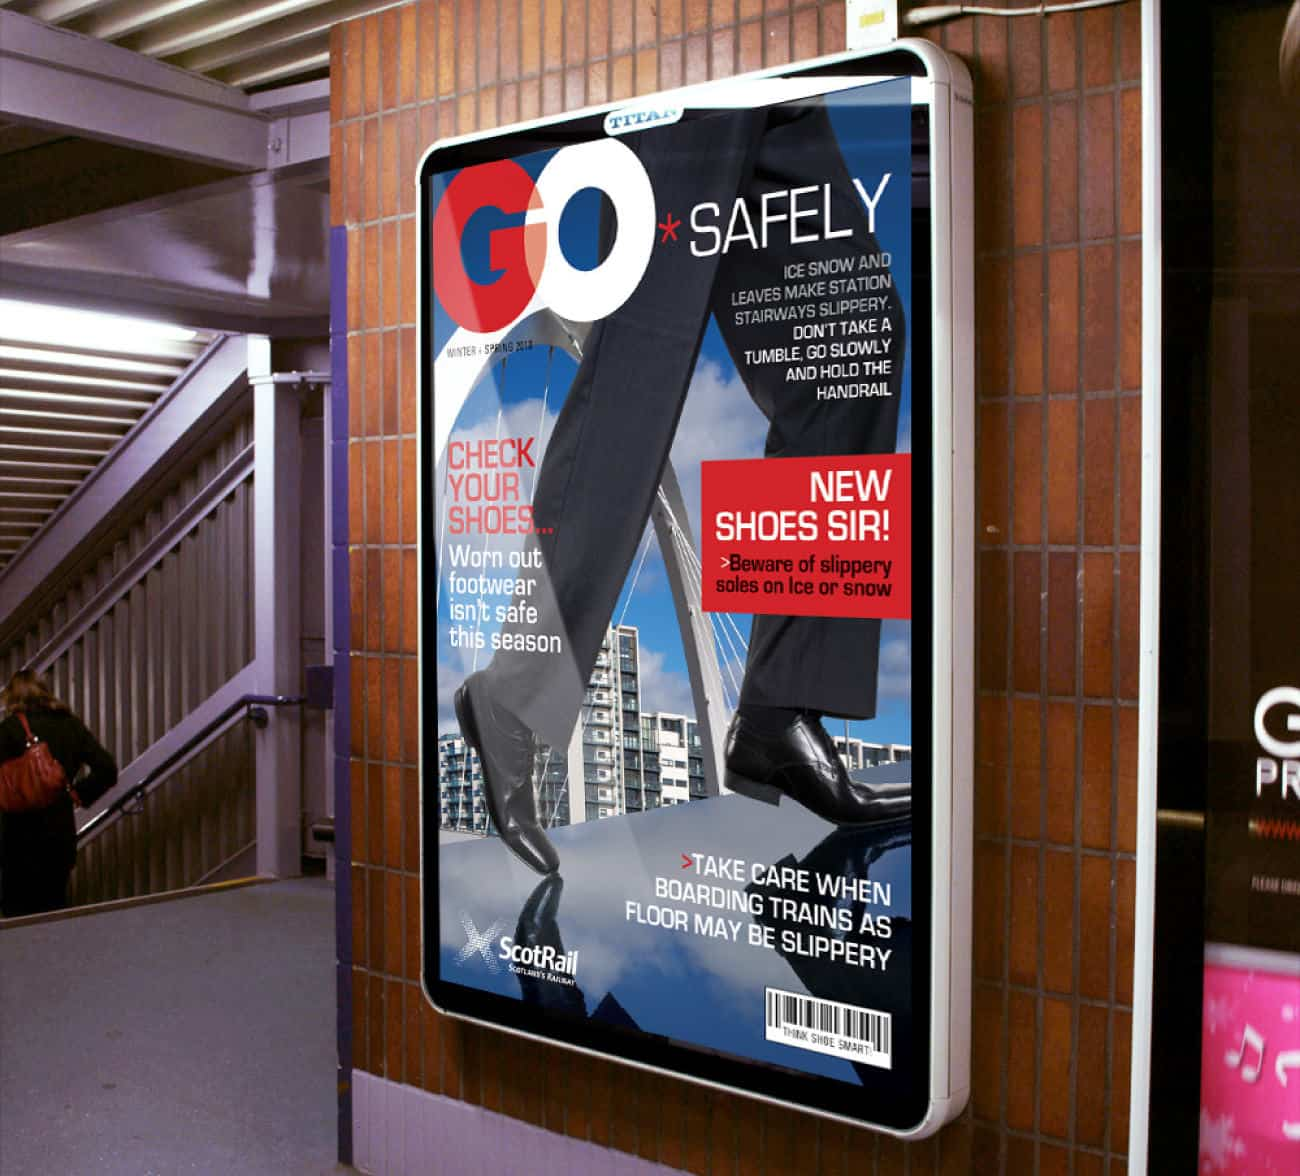 Scotrail go safetly campaign